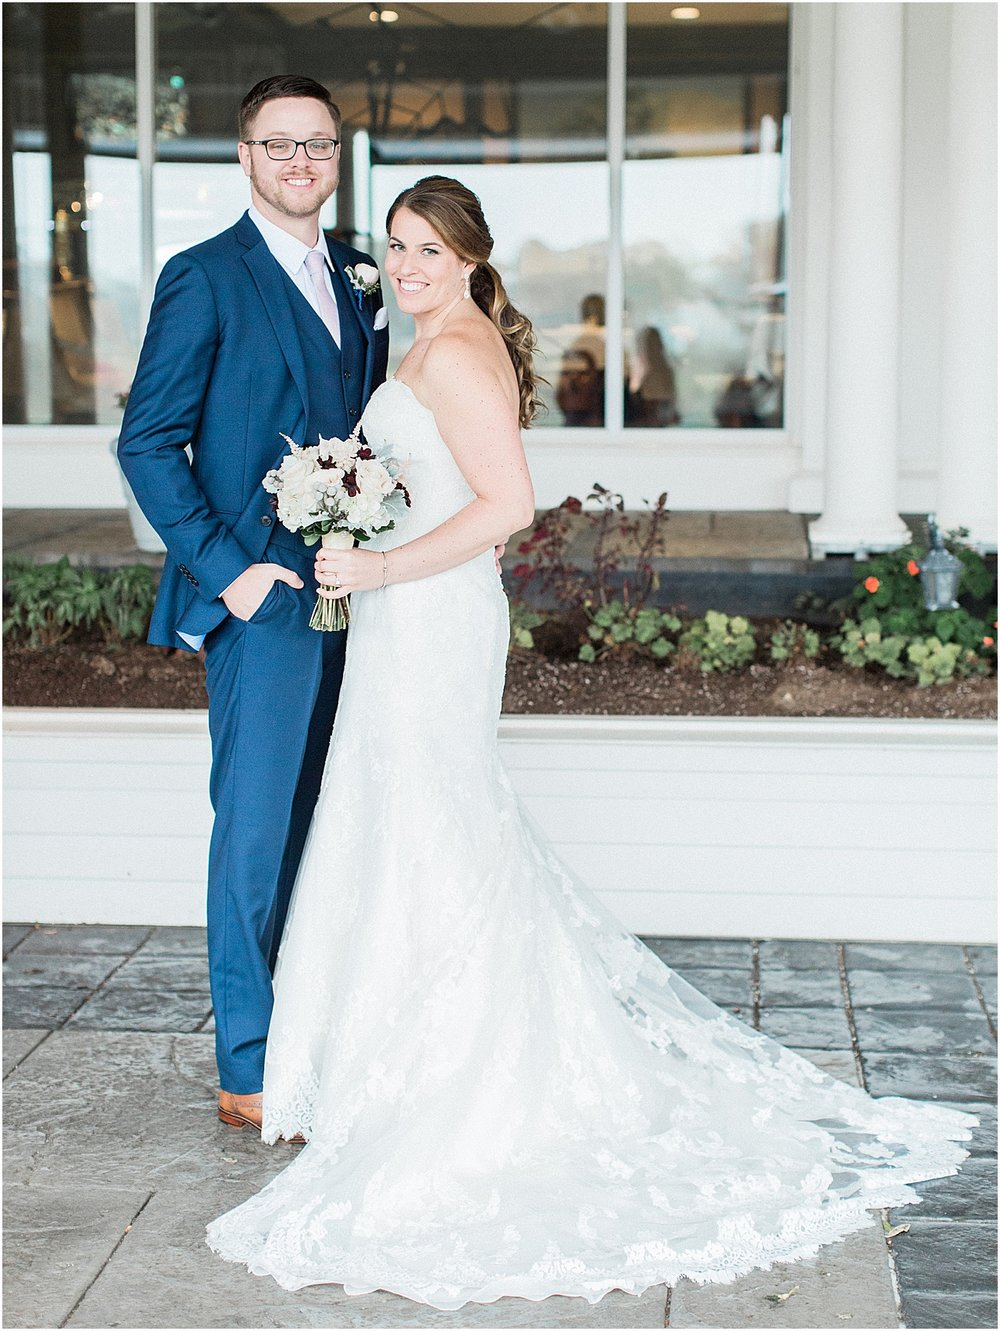 danielle_sean_willowbend_rain_rainy_day_cape_cod_boston_wedding_photographer_meredith_jane_photography_photo_1670.jpg